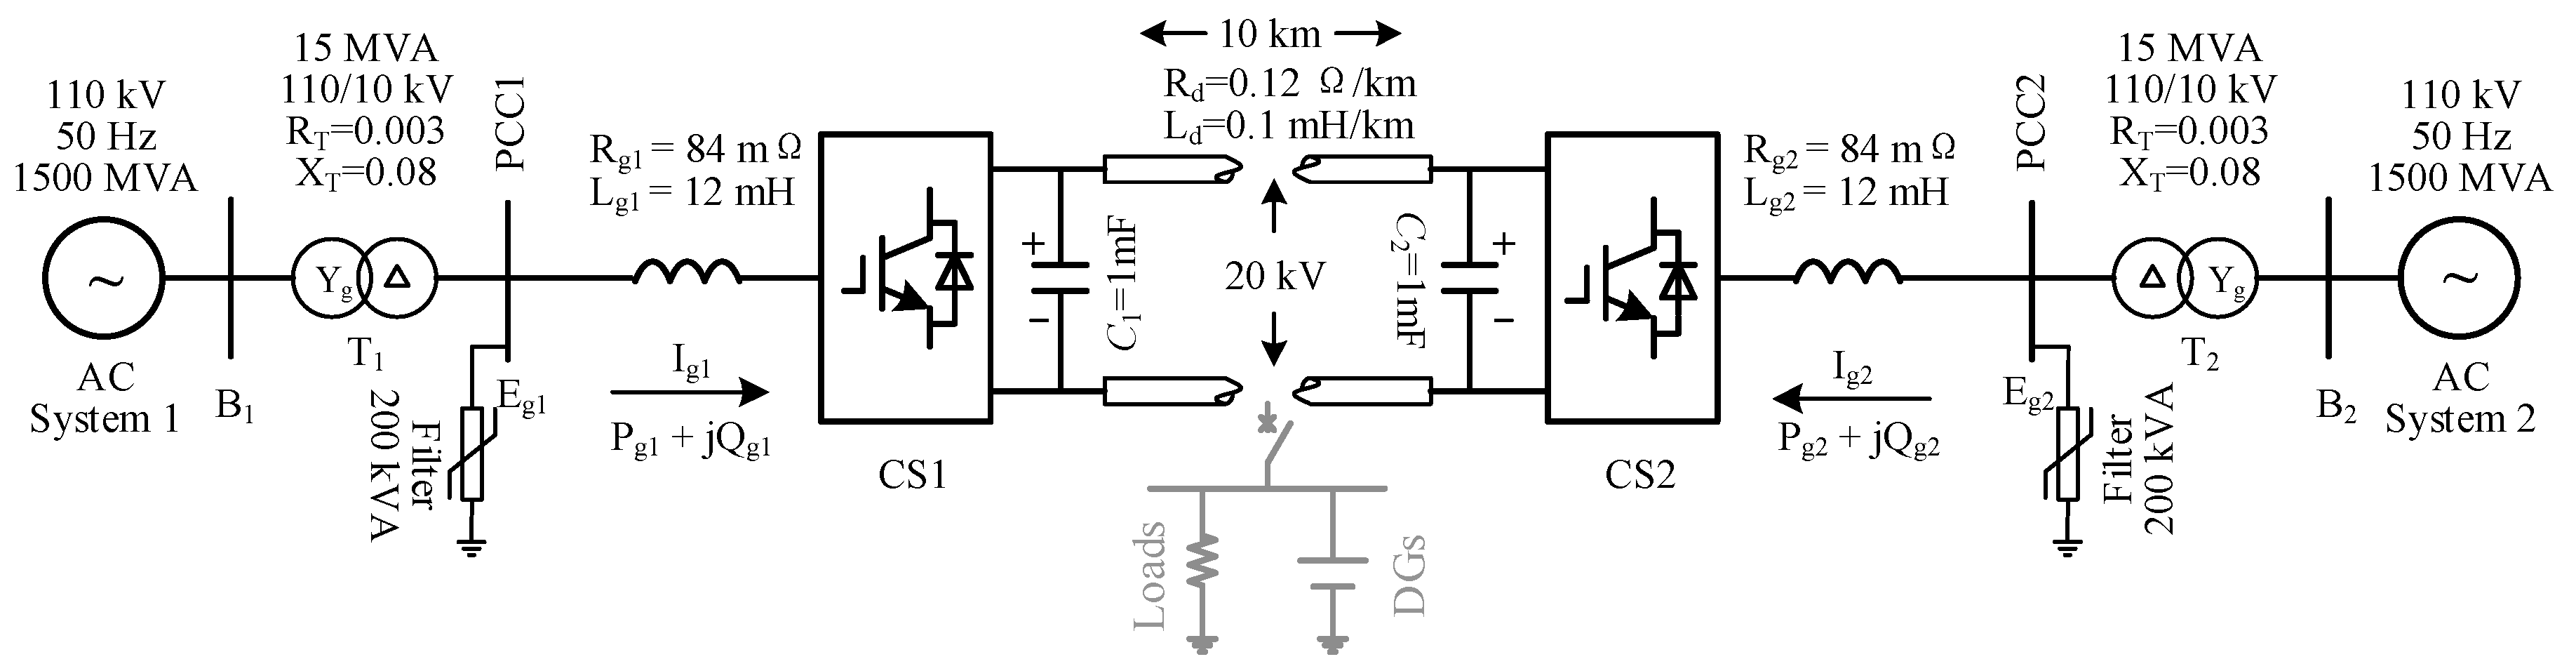 Energies Free Full Text Pidr Sliding Mode Current Control With Constantcurrentsourceconverter Basiccircuit Circuit Diagram No